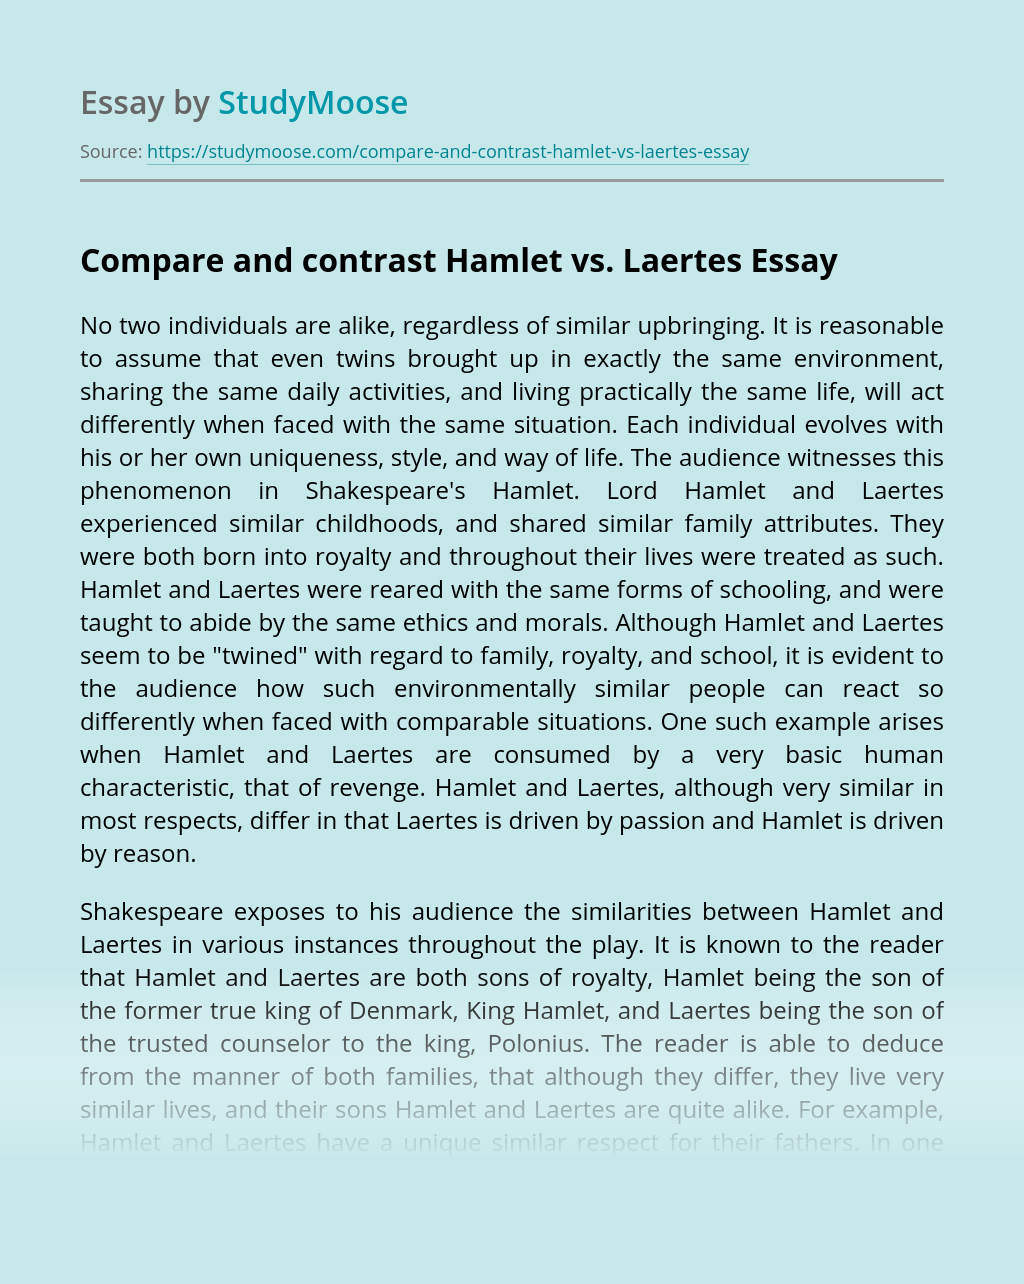 Compare and contrast Hamlet vs. Laertes